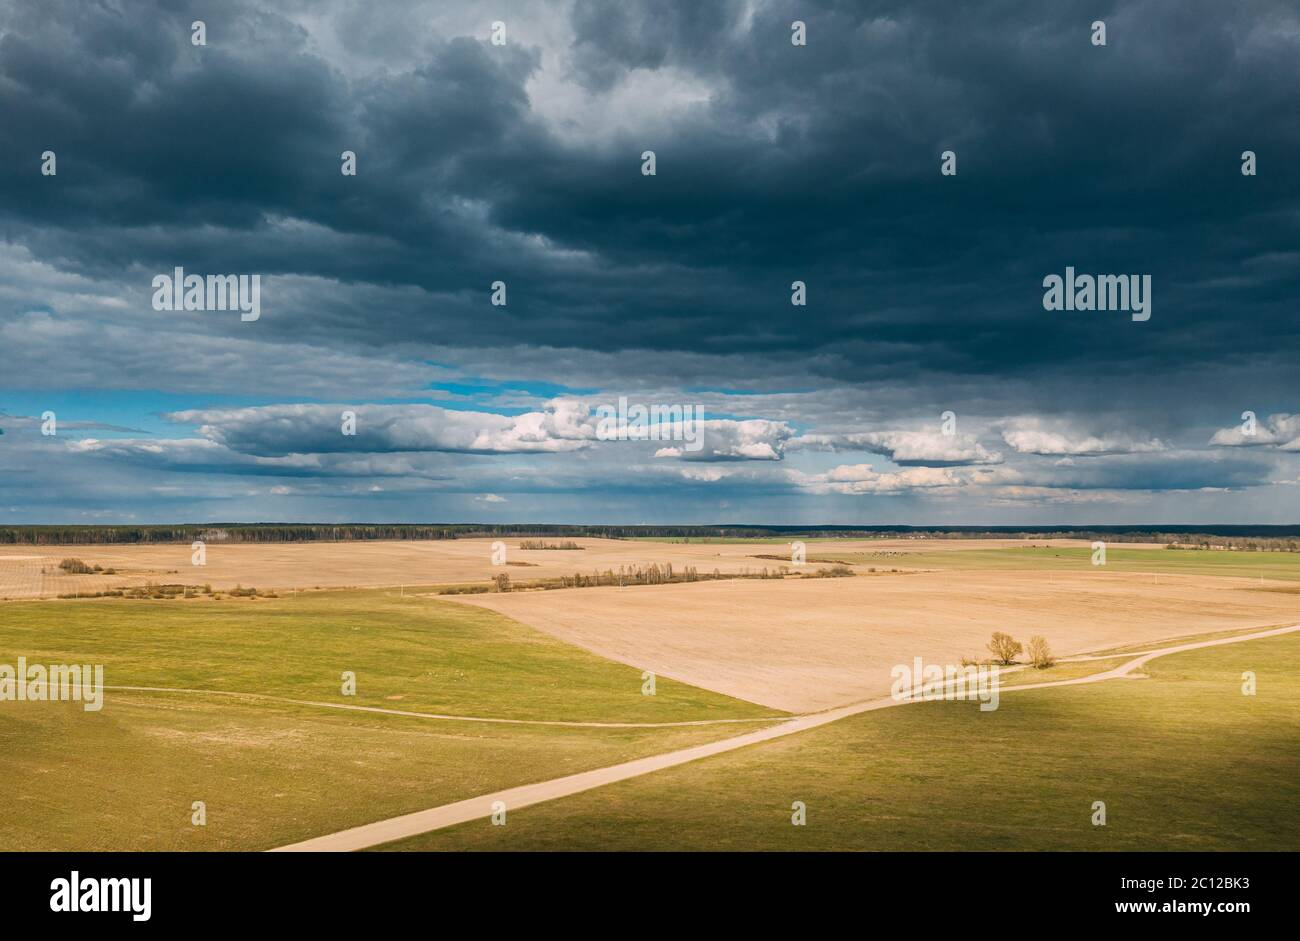 Aerial View. Amazing Natural Dramatic Sky With Rain Clouds Above Countryside Rural Field Landscape In Spring Day. Scenic Sky With Fluffy Clouds On Stock Photo